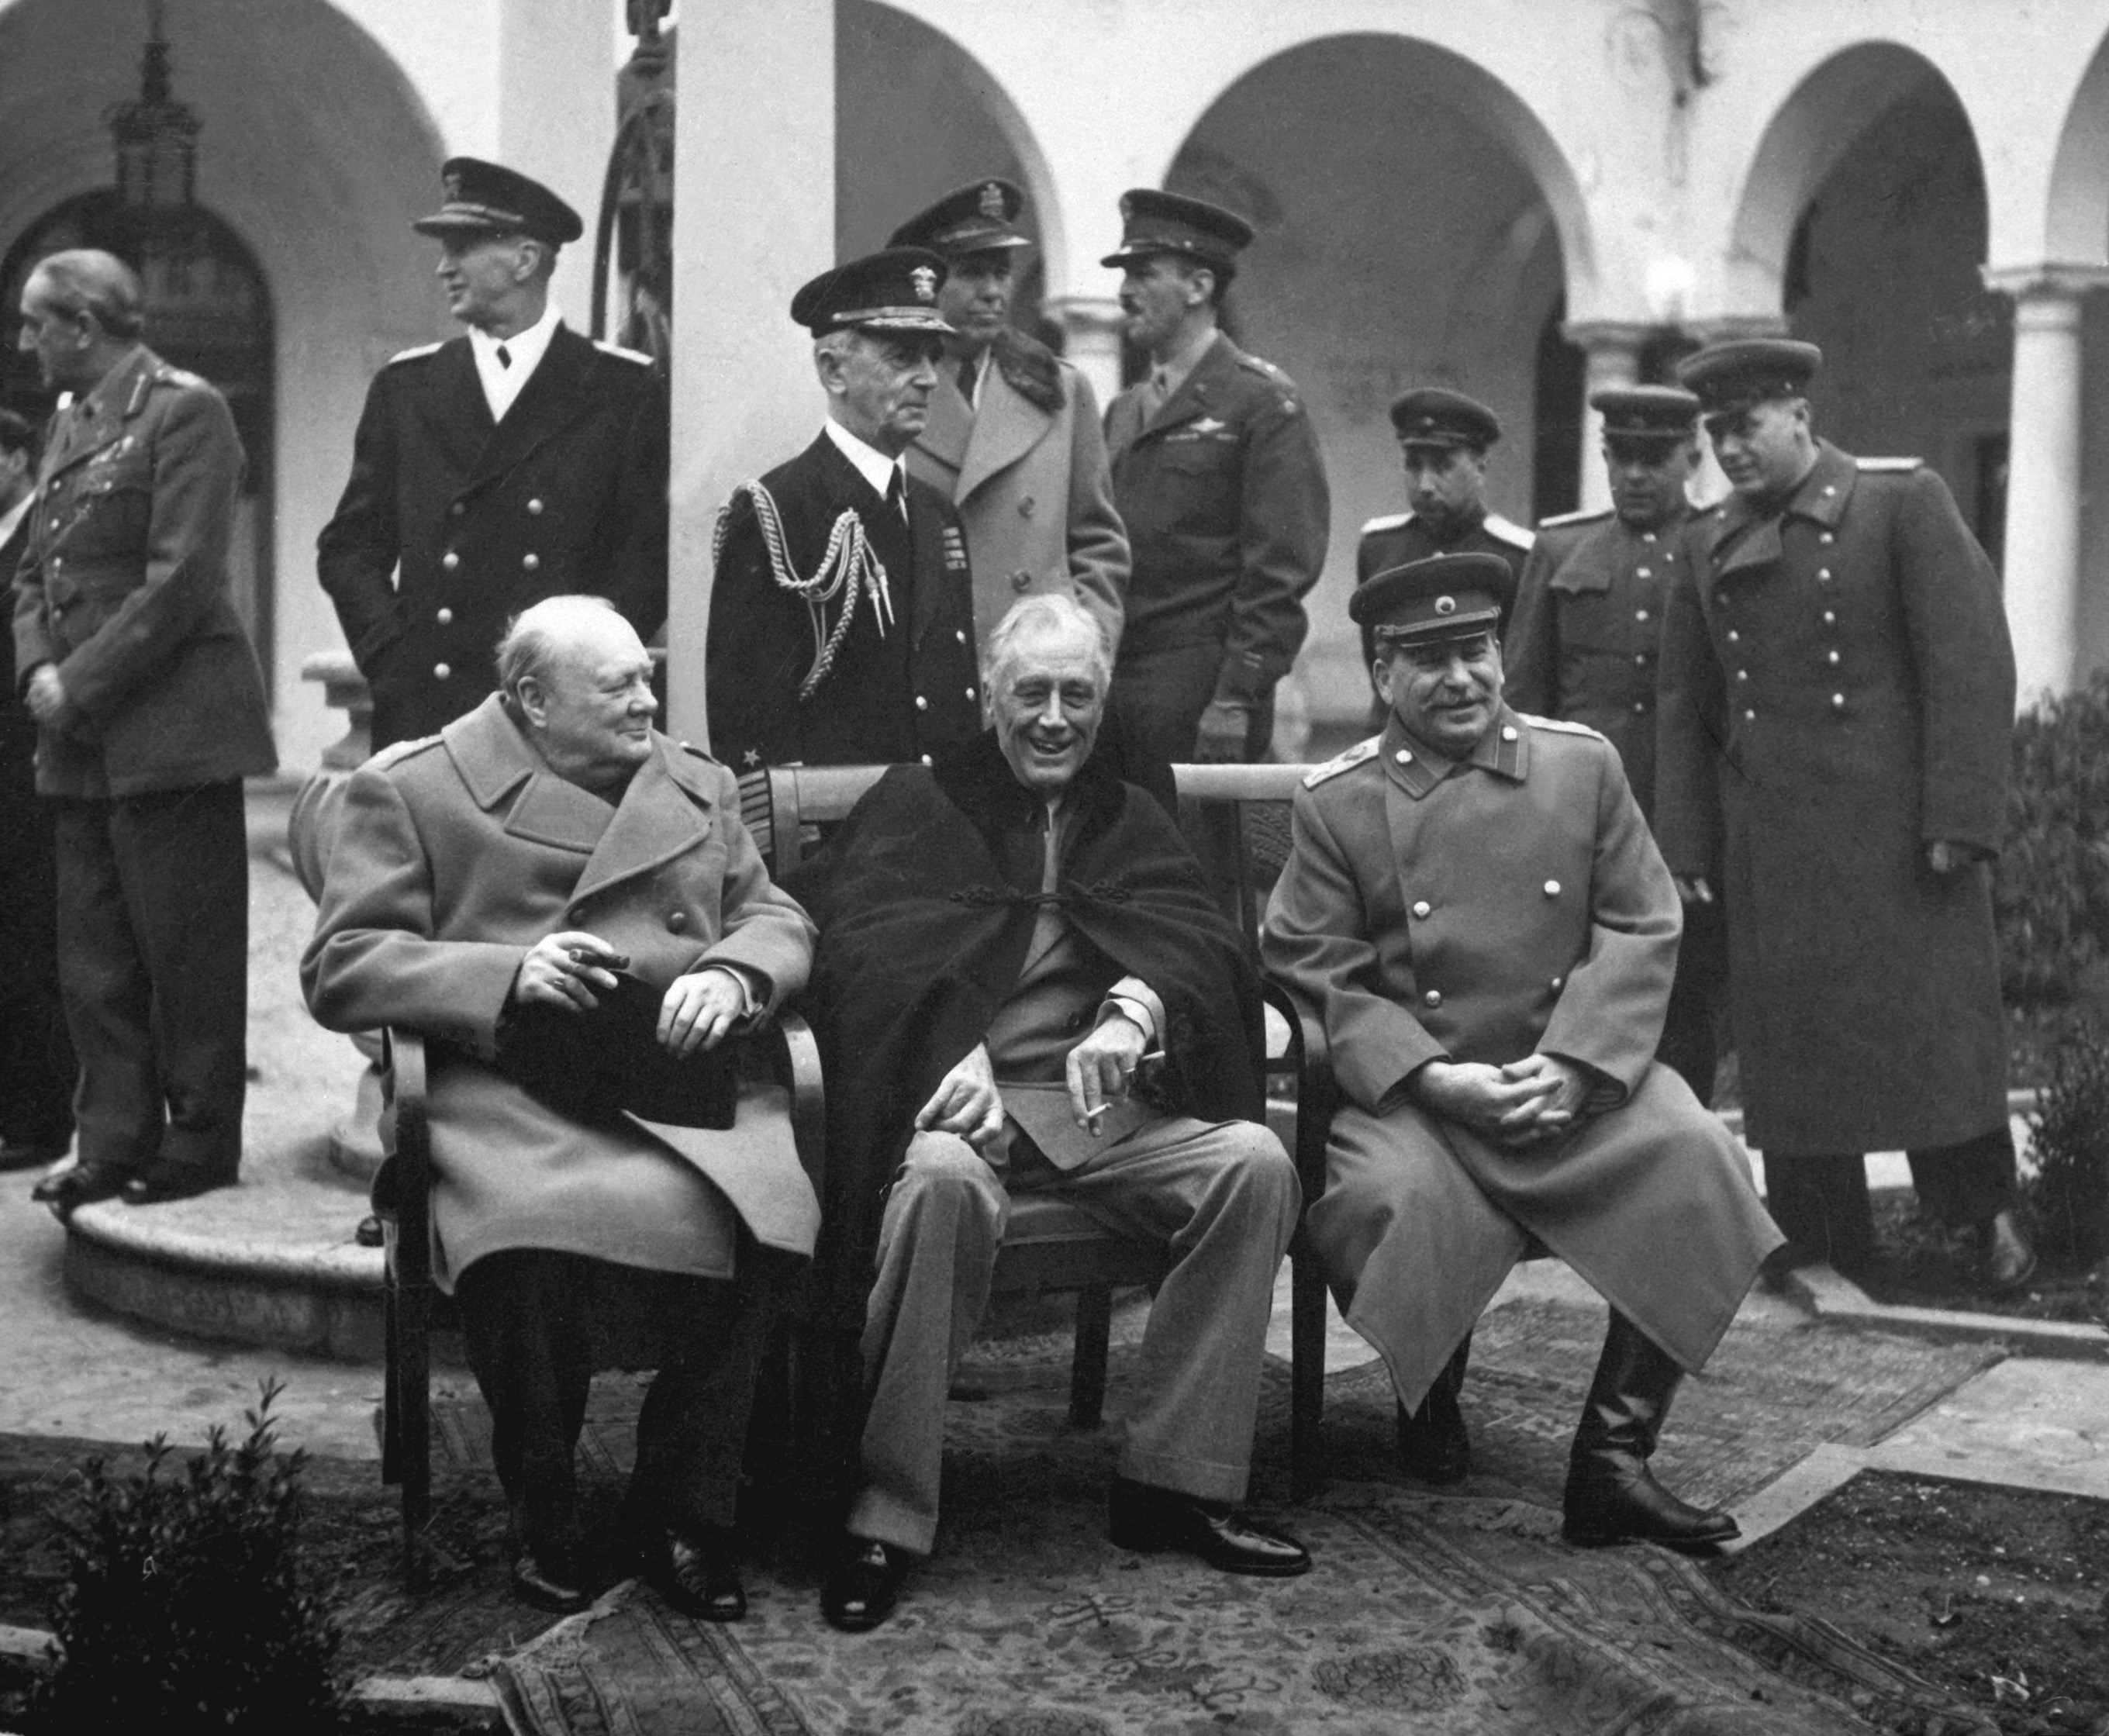 British Prime Minister Winston Churchill, U.S. President Franklin Roosevelt, and Soviet leader Joseph Stalin met at Yalta in February 1945 to discuss their joint occupation of Germany and plans for postwar Europe. Behind them stand, from the left, Field Marshal Sir Alan Brooke, Fleet Admiral Ernest King, Fleet Admiral William D. Leahy, General of the Army George Marshall, Major General Laurence S. Kuter, General Aleksei Antonov, Vice Admiral Stepan Kucherov, and Admiral of the Fleet Nikolay Kuznetsov. February 1945. (Army) Exact Date Shot Unknown NARA FILE #: 111-SC-260486 WAR & CONFLICT BOOK #: 750